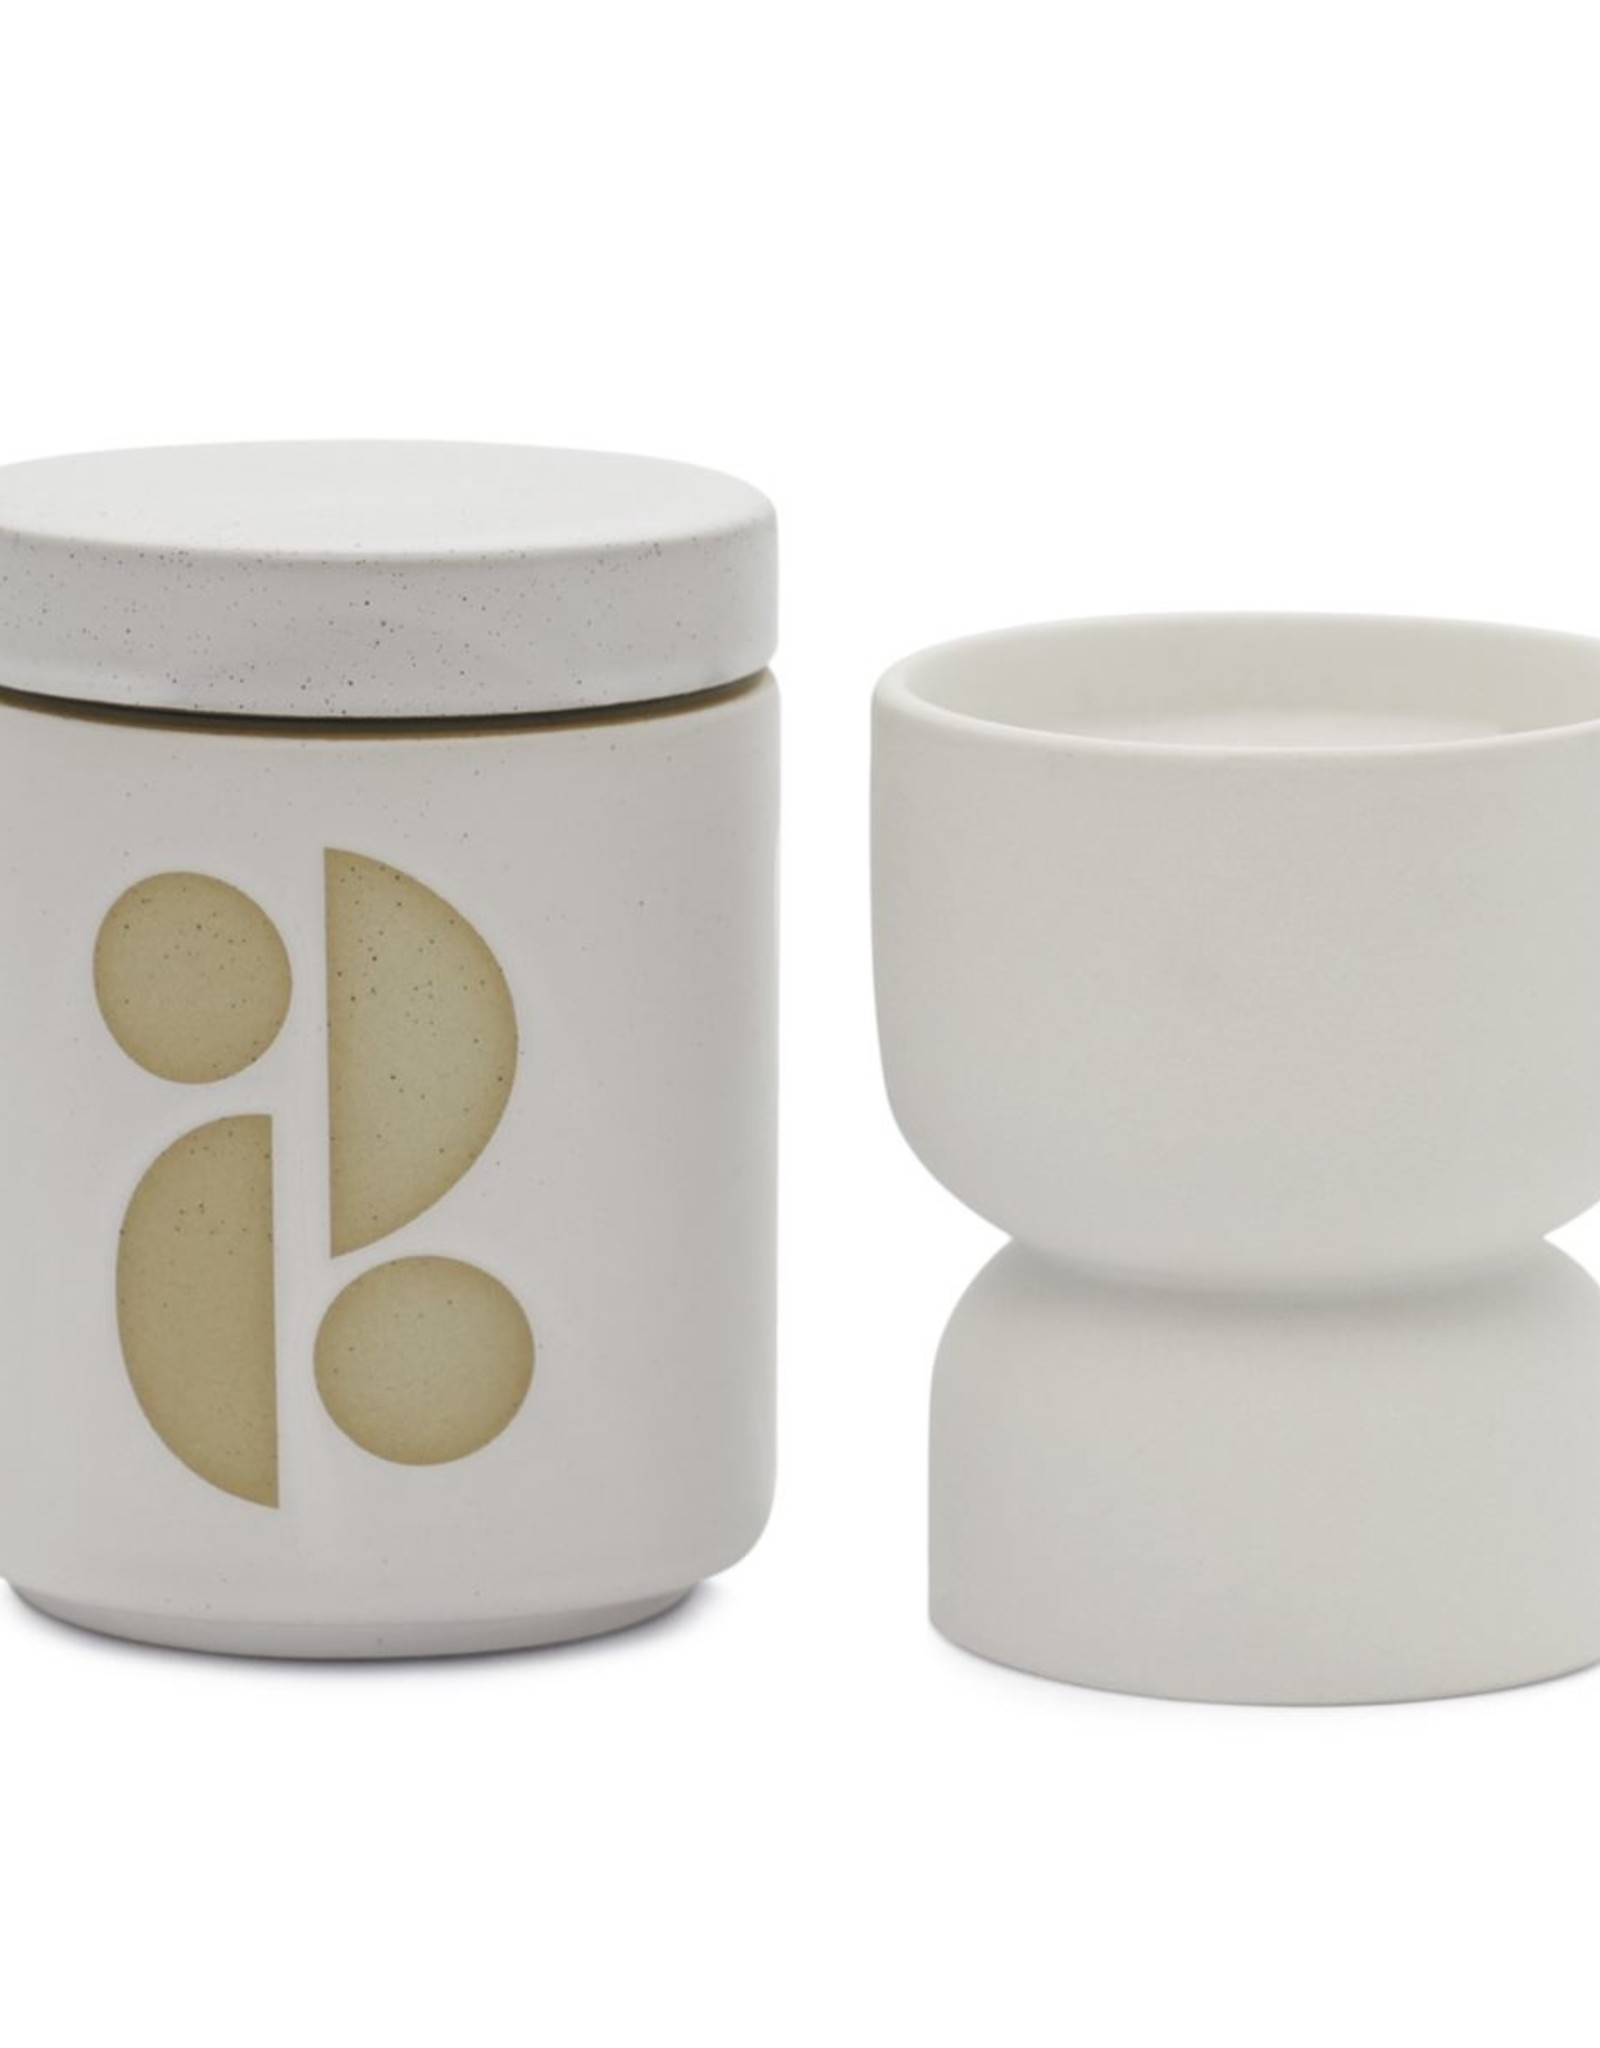 Paddywax Form 6 oz. White Matte Hourglass Textured Ceramic Candle- Tobacco Flower